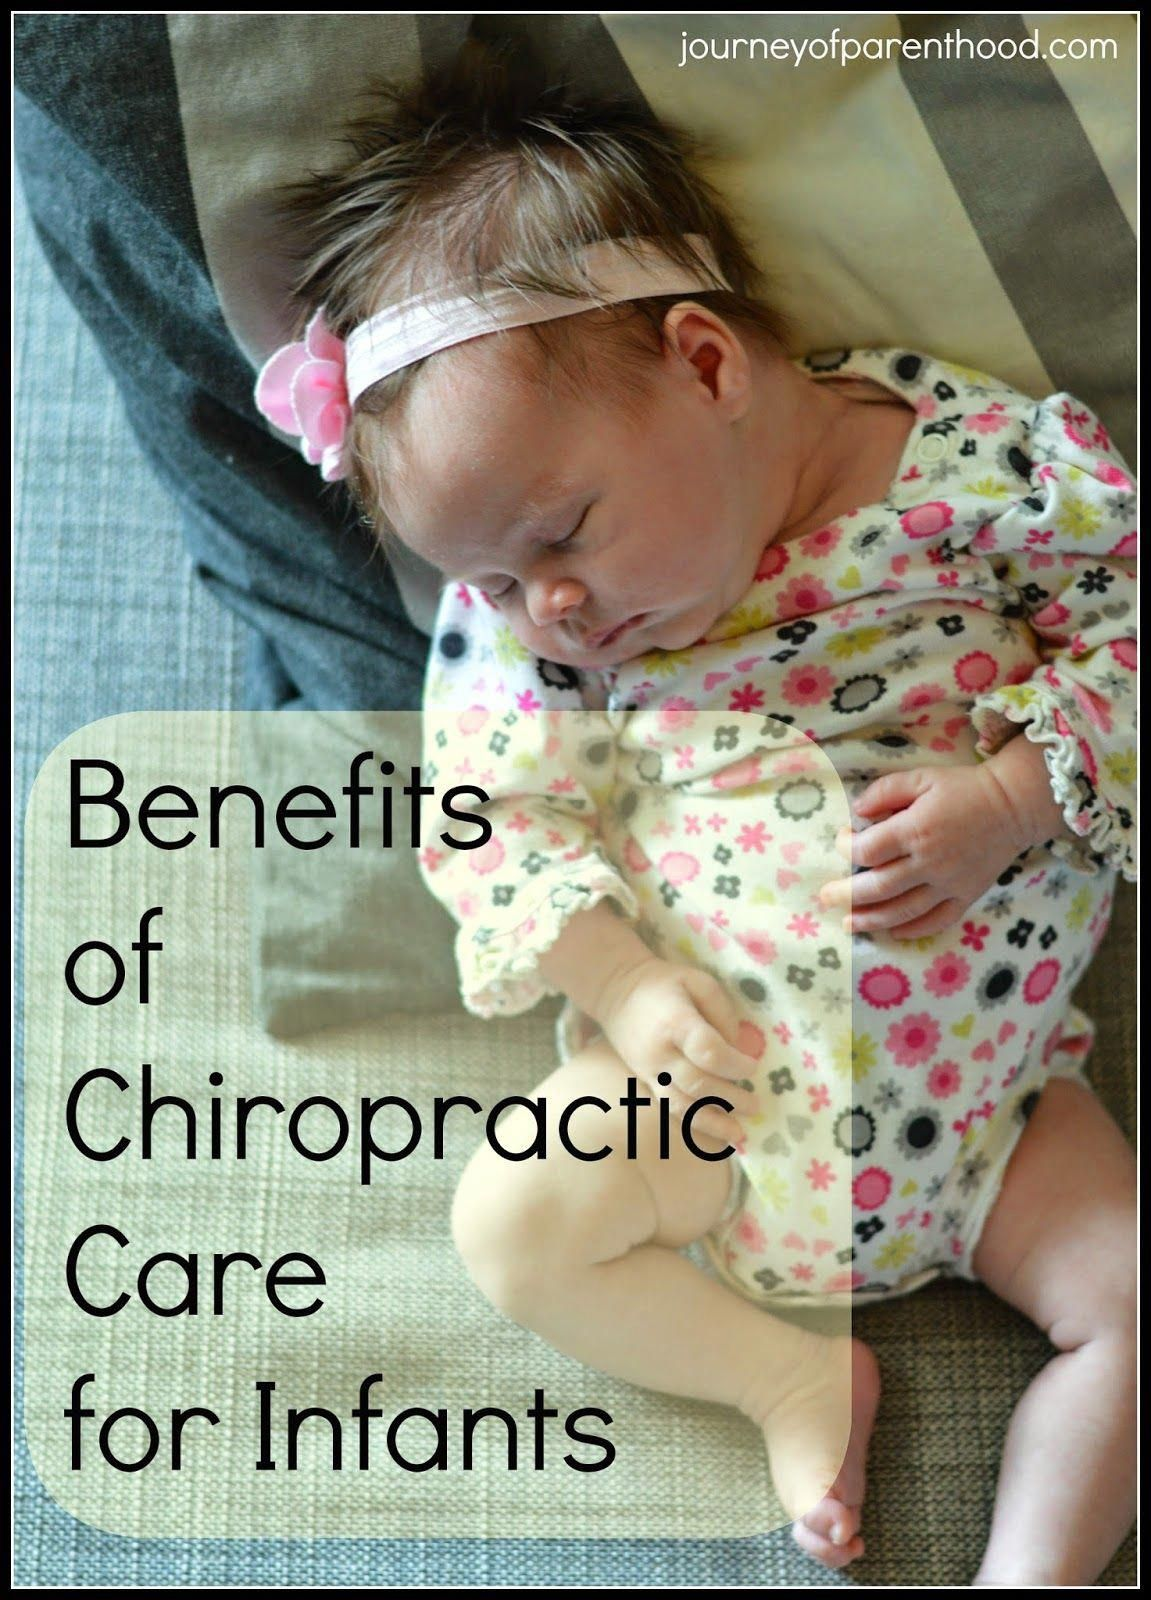 Benefits of Chiropractic Care for Infants   Chiropractor   Natural Healing   Gas...